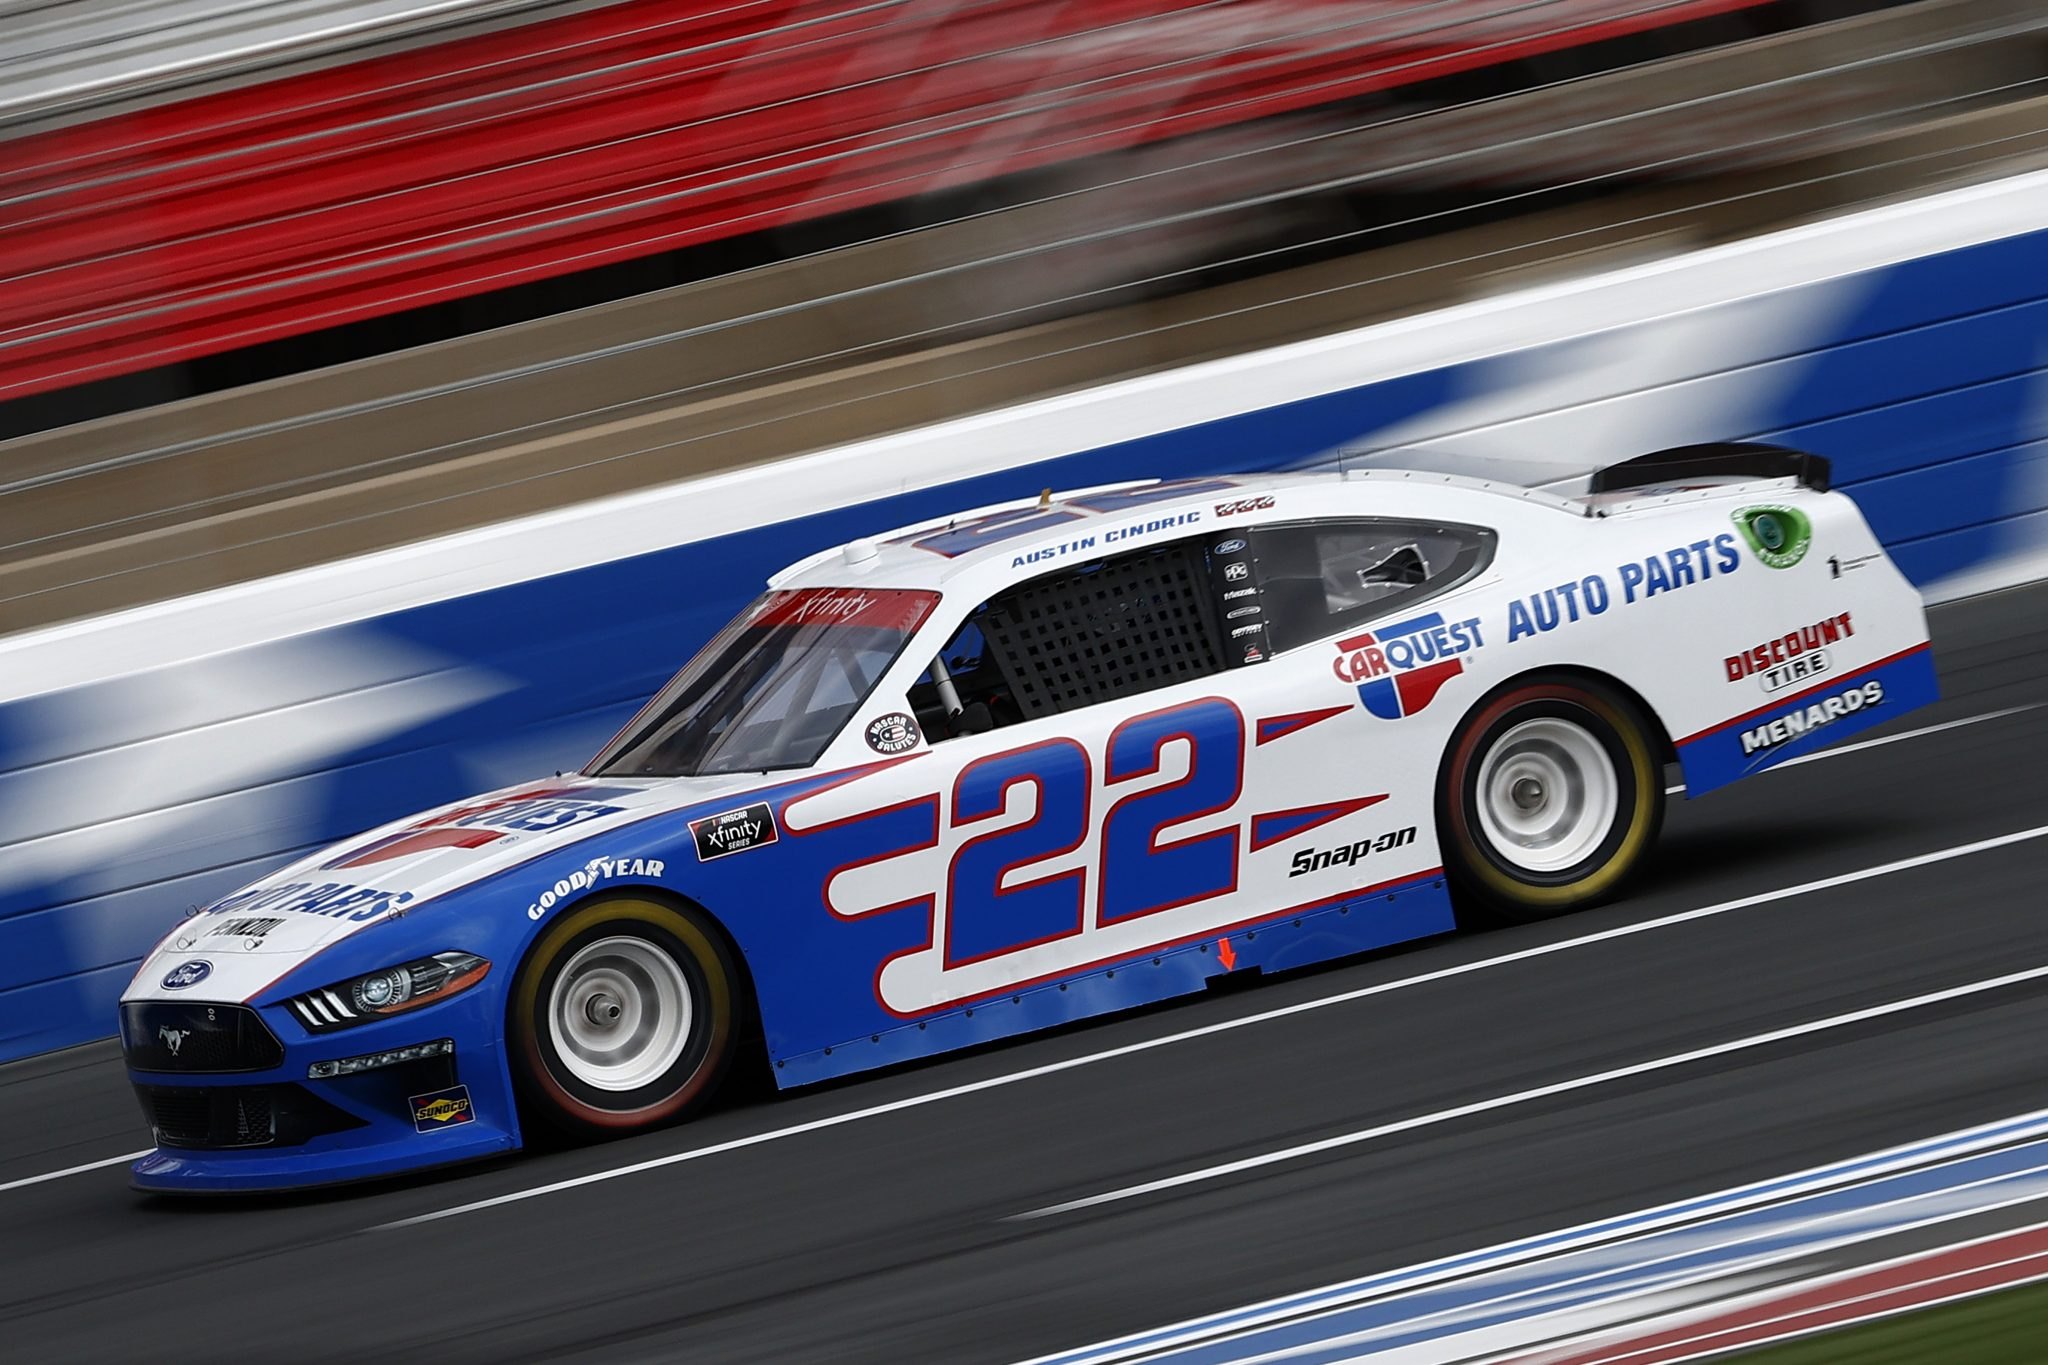 CONCORD, NORTH CAROLINA - MAY 28: Austin Cindric, driver of the #22 CarQuest Auto Parts Ford, drives during practice for the NASCAR Xfinity Series Alsco Uniforms 300 at Charlotte Motor Speedway on May 28, 2021 in Concord, North Carolina. (Photo by Maddie Meyer/Getty Images) | Getty Images